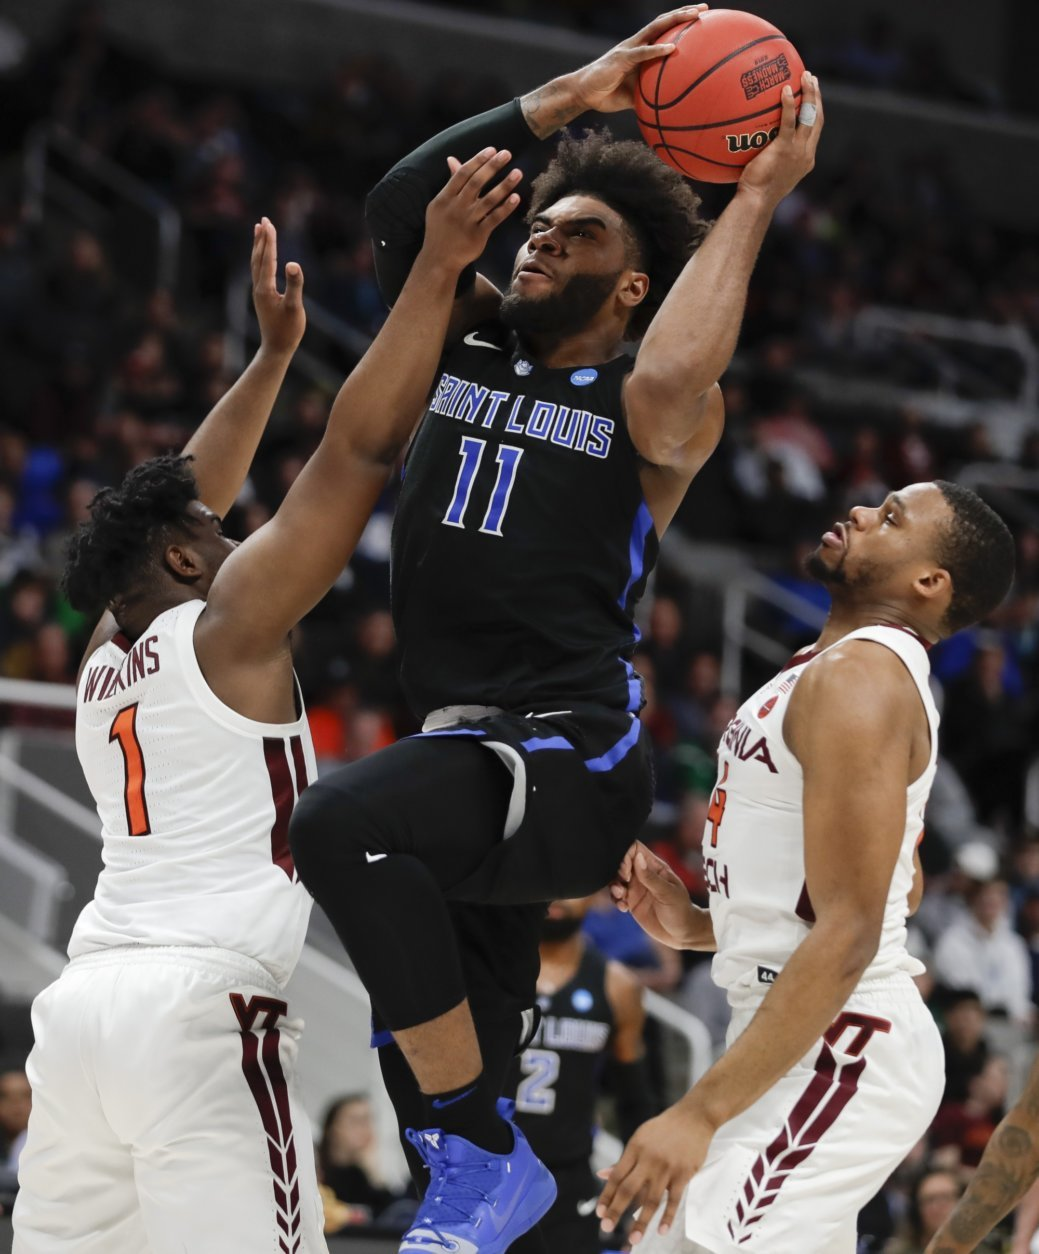 Saint Louis forward Hasahn French, middle, shoots between Virginia Tech guard Isaiah Wilkins, left, and forward P.J. Horne during the first half of a first-round game in the NCAA men's college basketball tournament Friday, March 22, 2019, in San Jose, Calif. (AP Photo/Ben Margot)